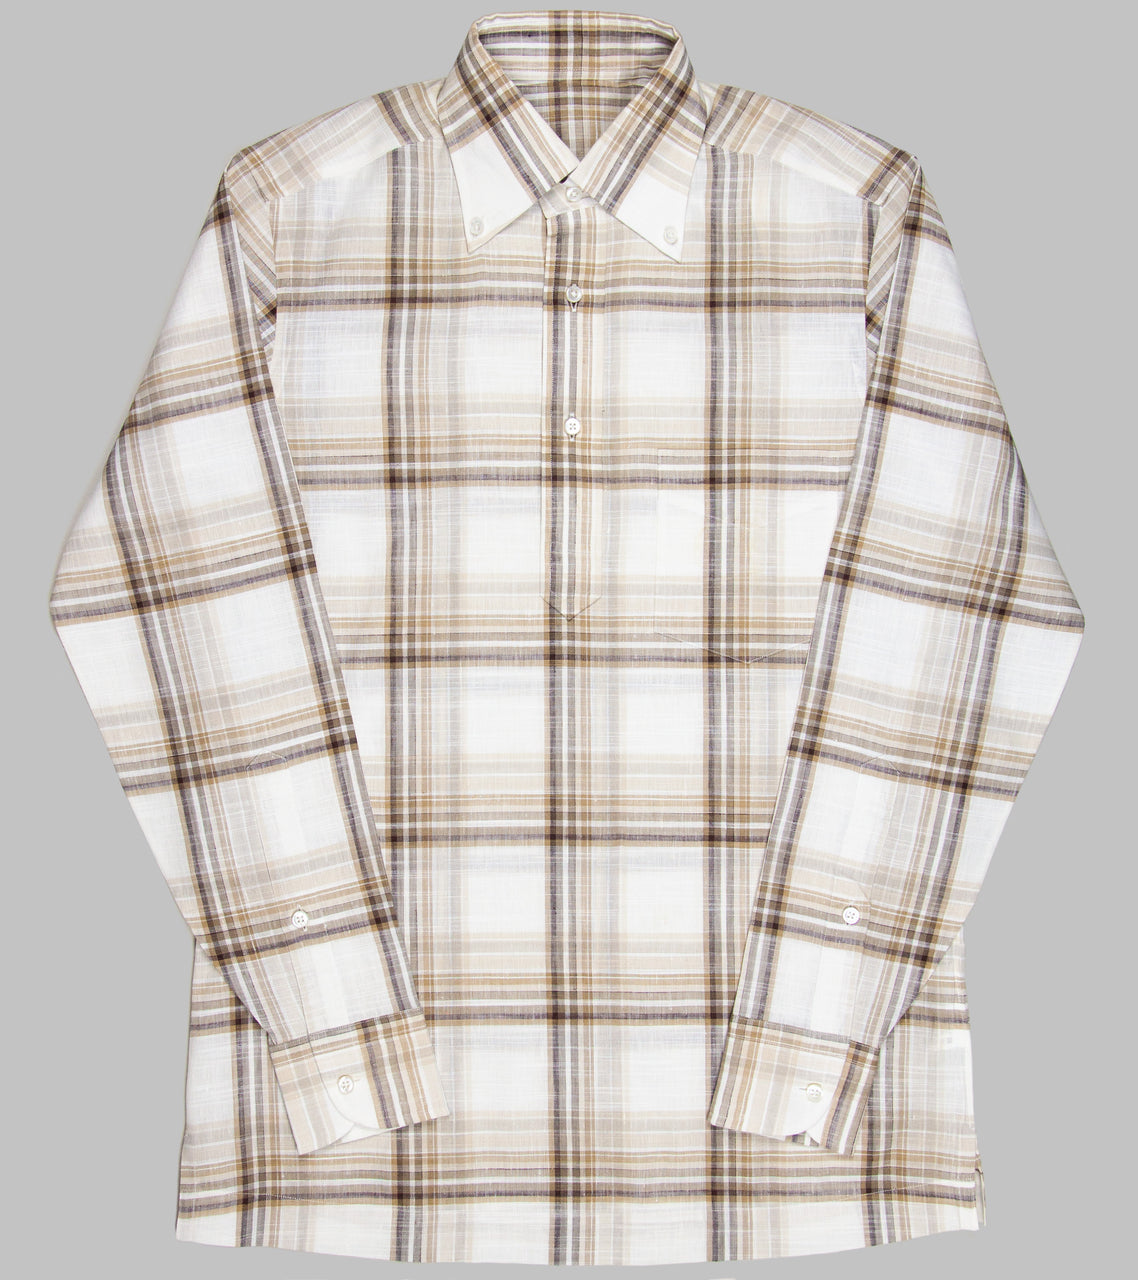 Bryceland's Linen Button Down Paid Shirt Brown